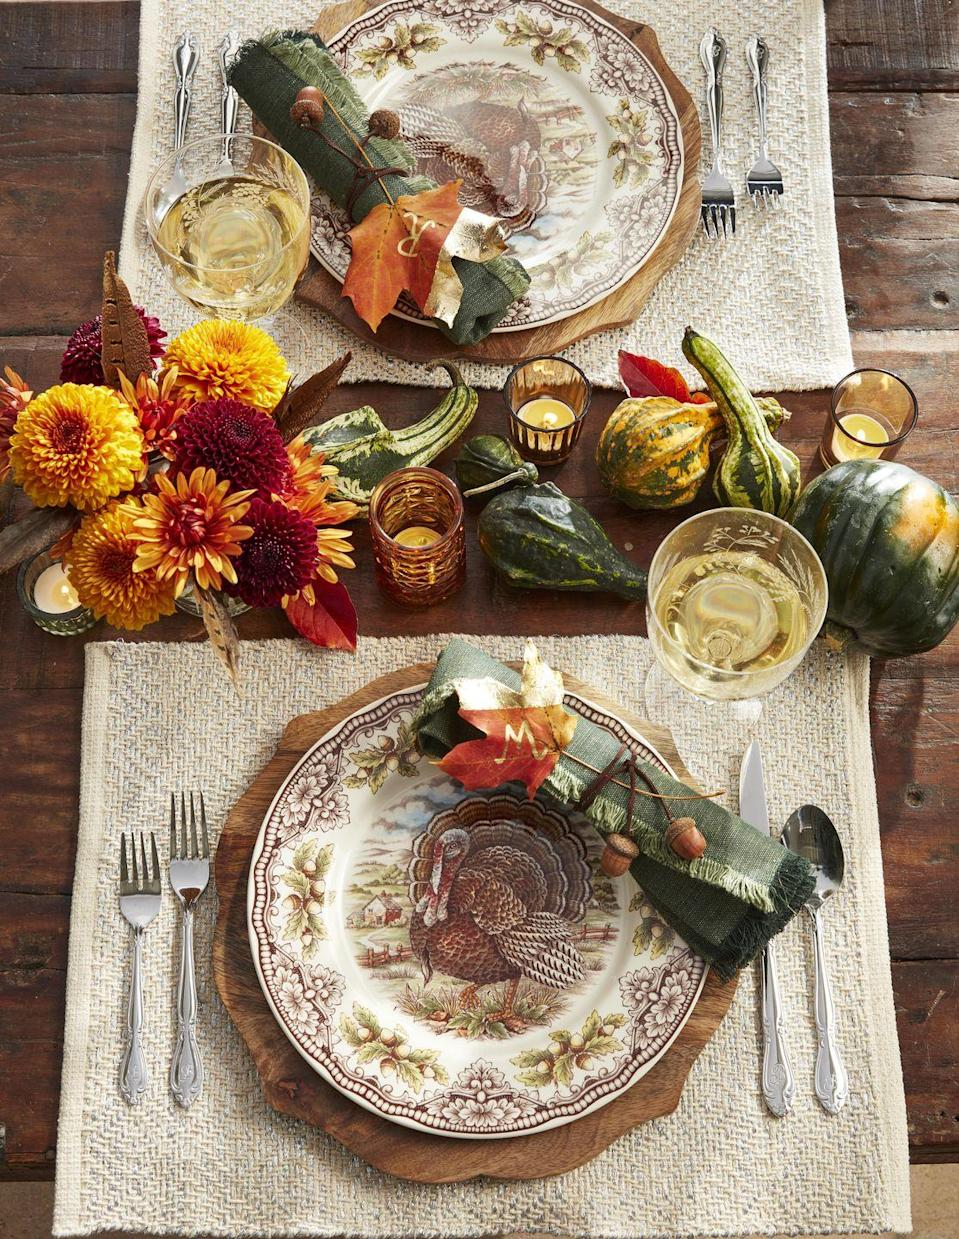 "<p>Nature is the theme of this classically fall hued table. Hot glue acorns to lengths of brown waxed twine and use to tie up rolled napkins. Apply gold leaf to a portion of a preserved maple leaf and use a gold paint pen to mark with guest's initials.</p><p><a class=""link rapid-noclick-resp"" href=""https://www.amazon.com/Solino-Home-Linen-Dinner-Napkins/dp/B07GR4VZJS/ref=sr_1_1_sspa?tag=syn-yahoo-20&ascsubtag=%5Bartid%7C10050.g.2063%5Bsrc%7Cyahoo-us"" rel=""nofollow noopener"" target=""_blank"" data-ylk=""slk:SHOP NAPKINS"">SHOP NAPKINS</a></p>"